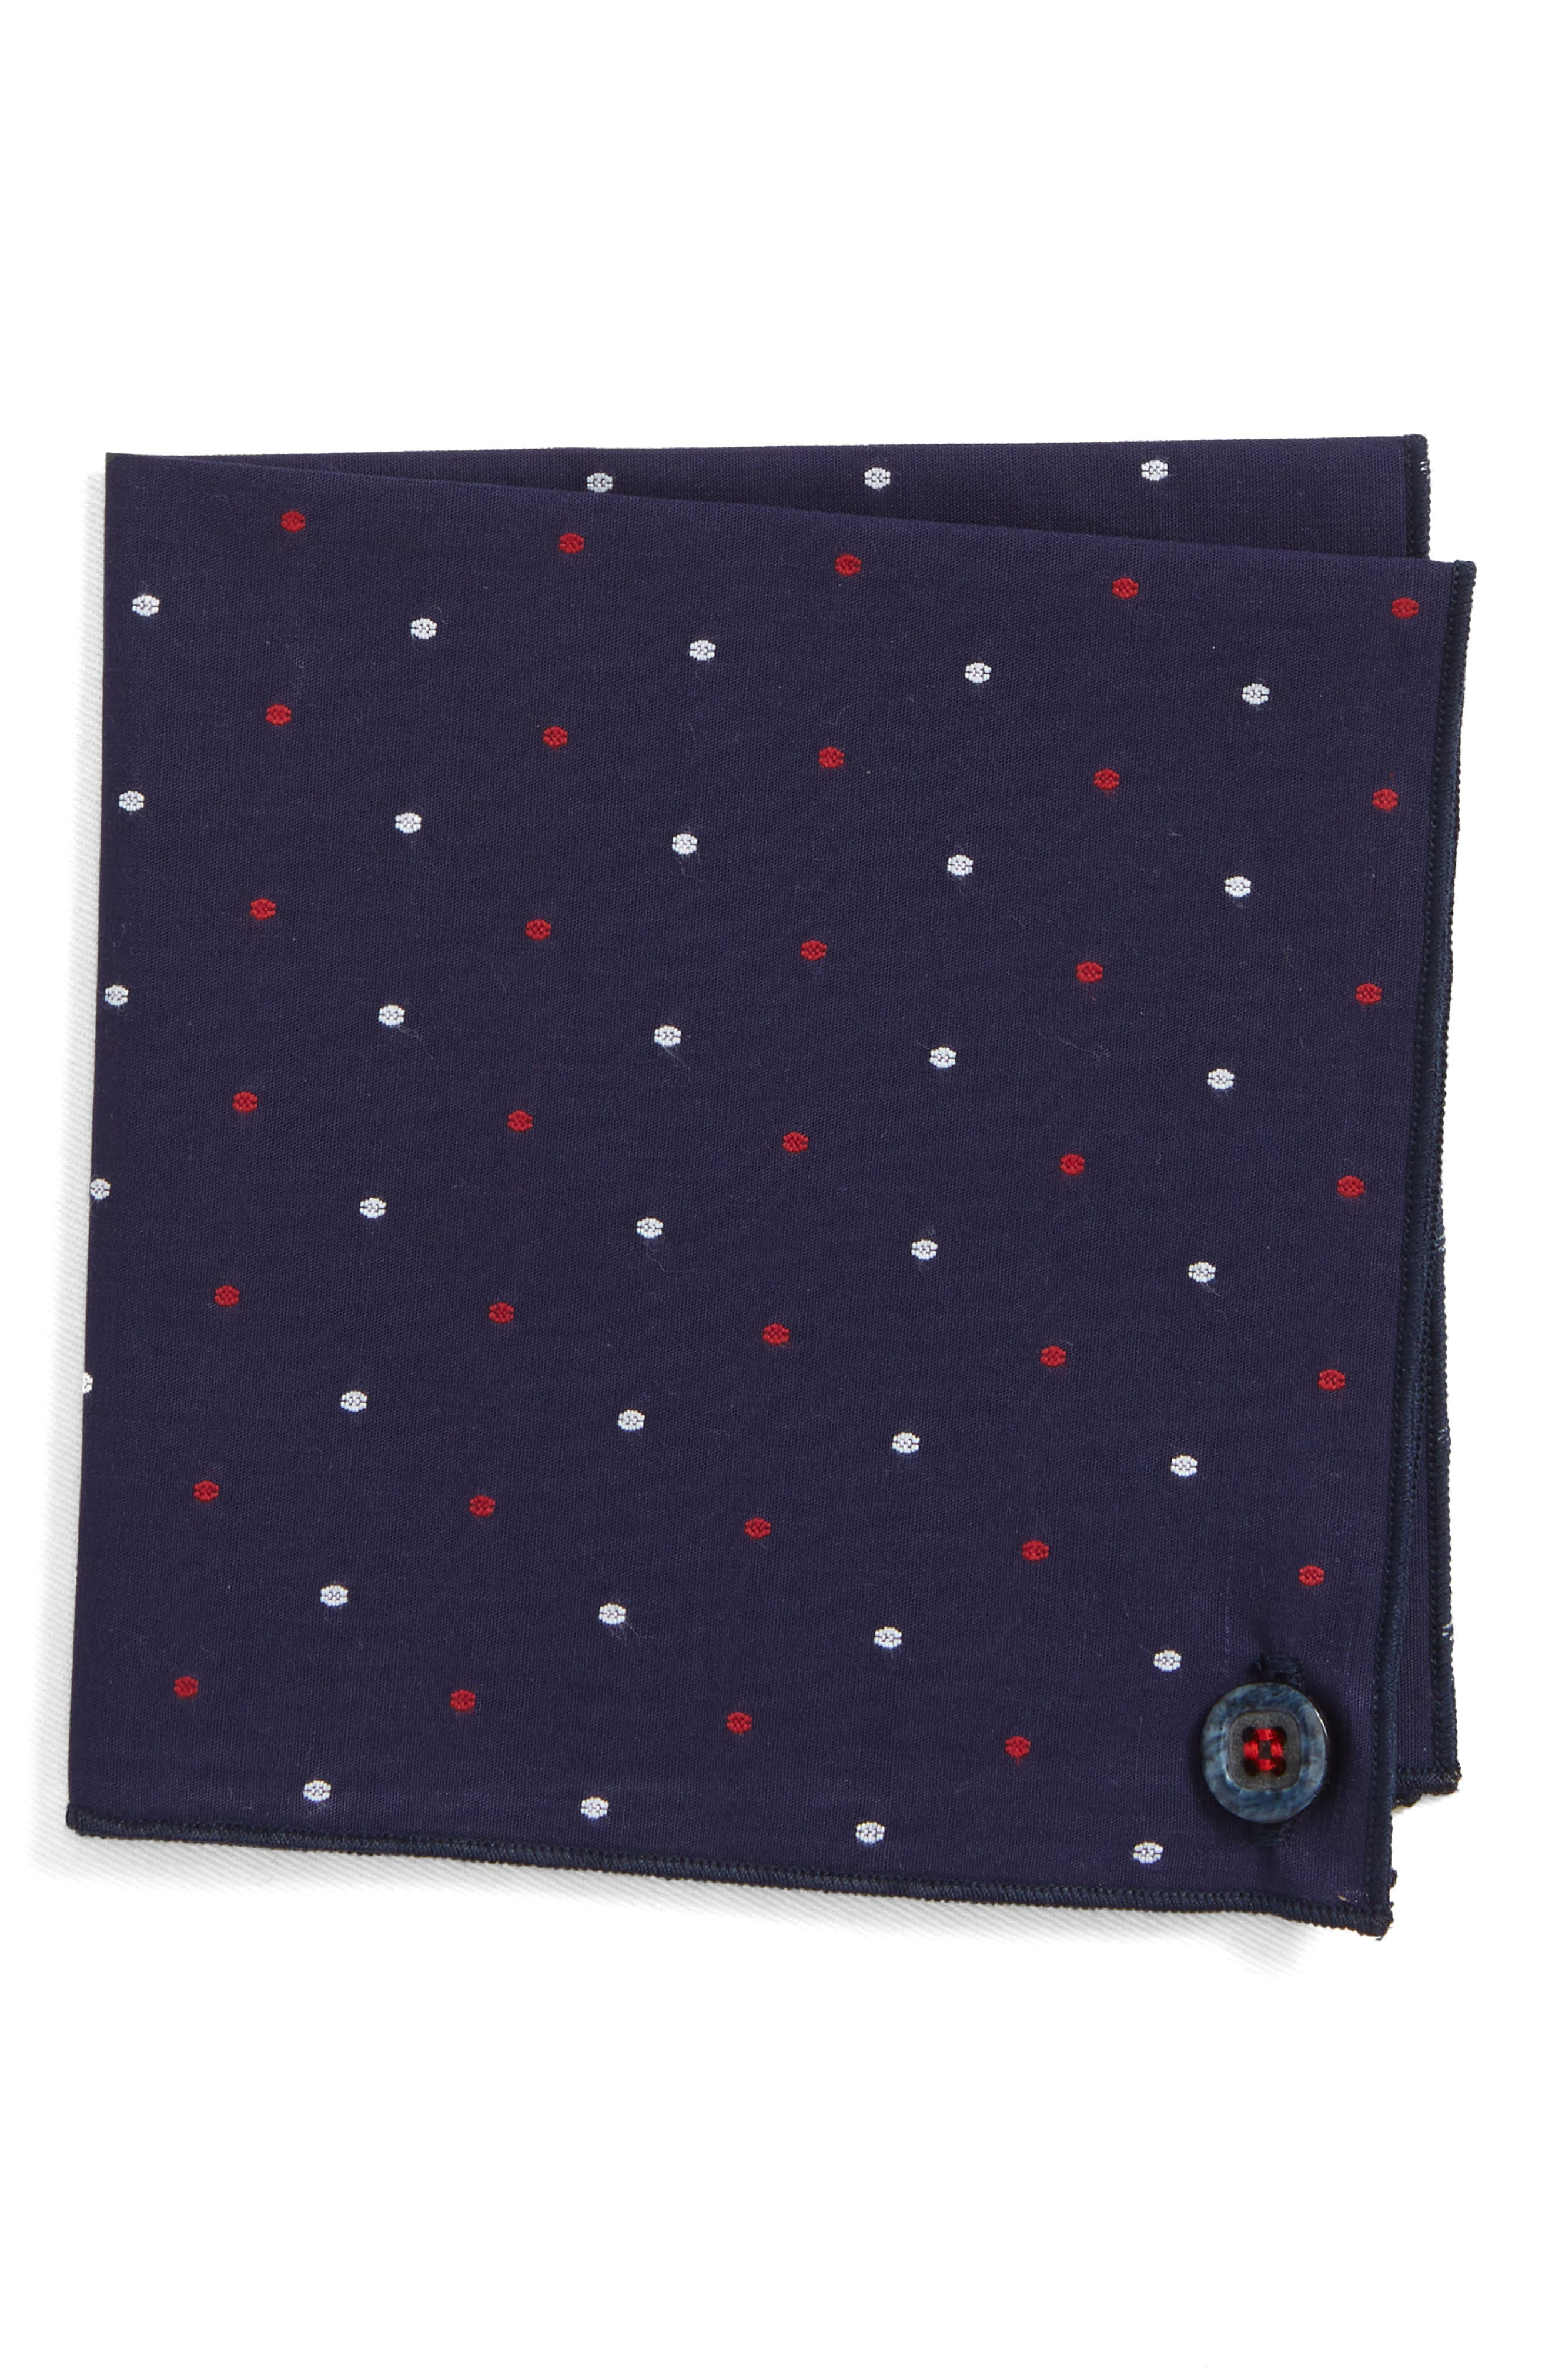 Navy Lee Cotton Pocket Square,                         Main,                         color, Navy